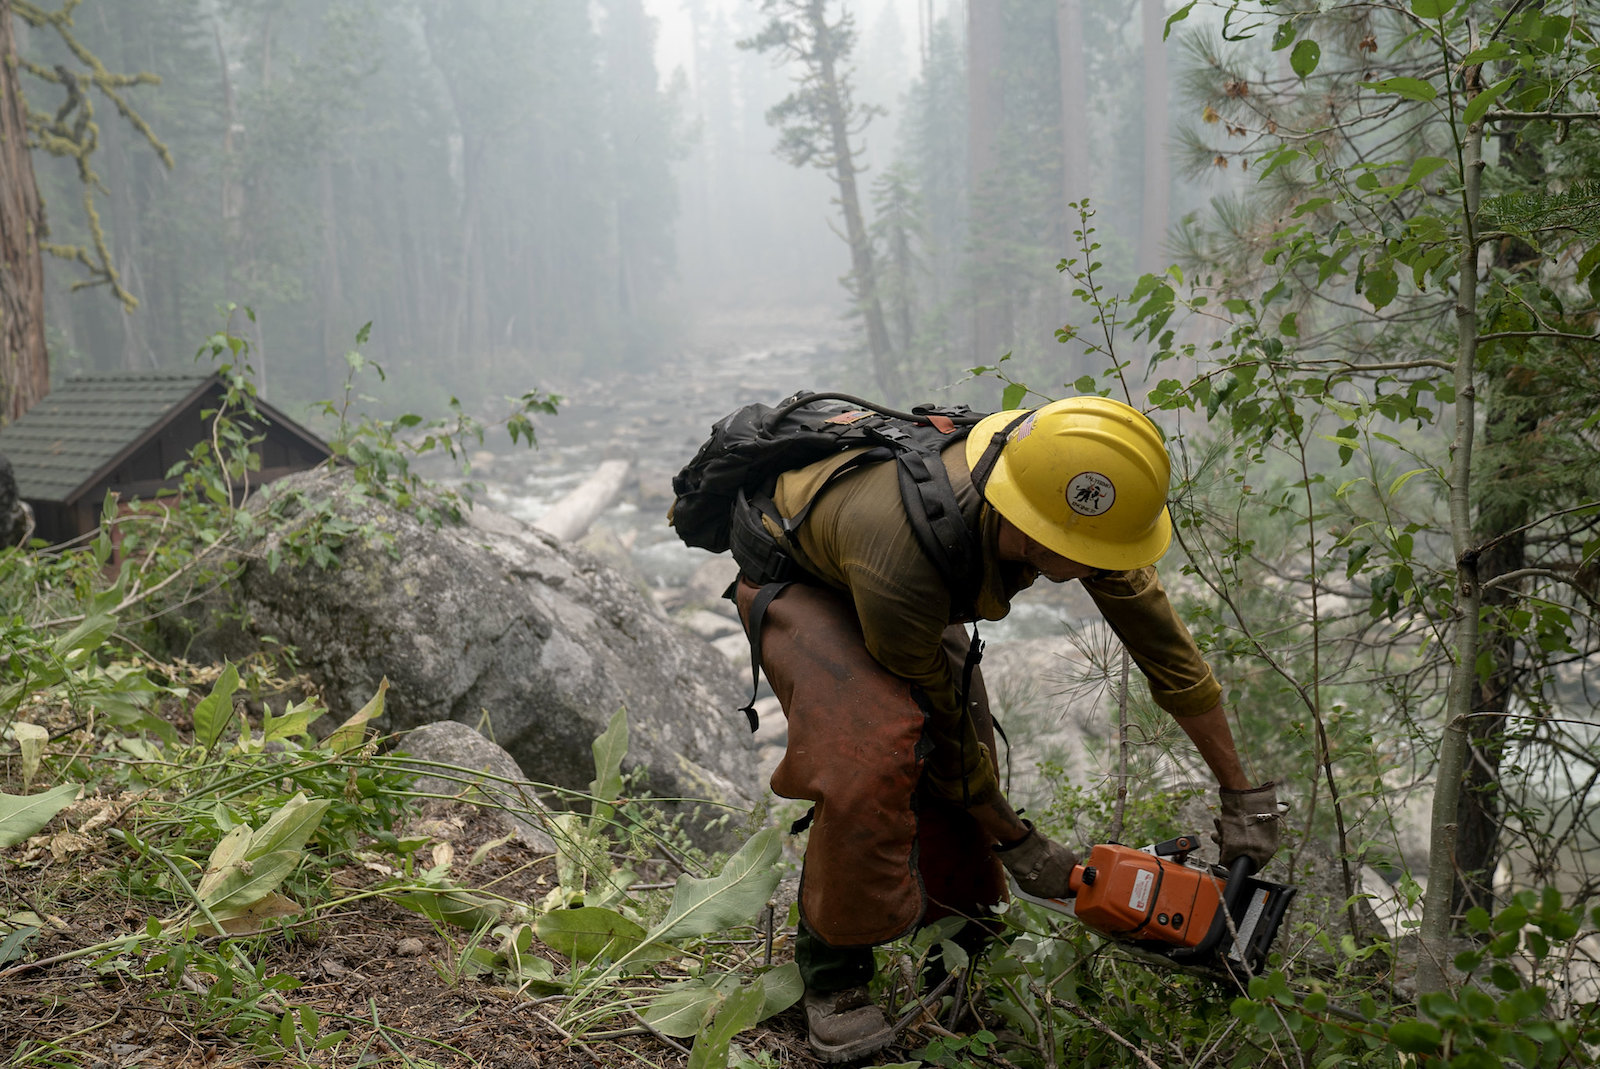 A person with a yellow hard had holds a chainsaw and clears out small green plants in a forest